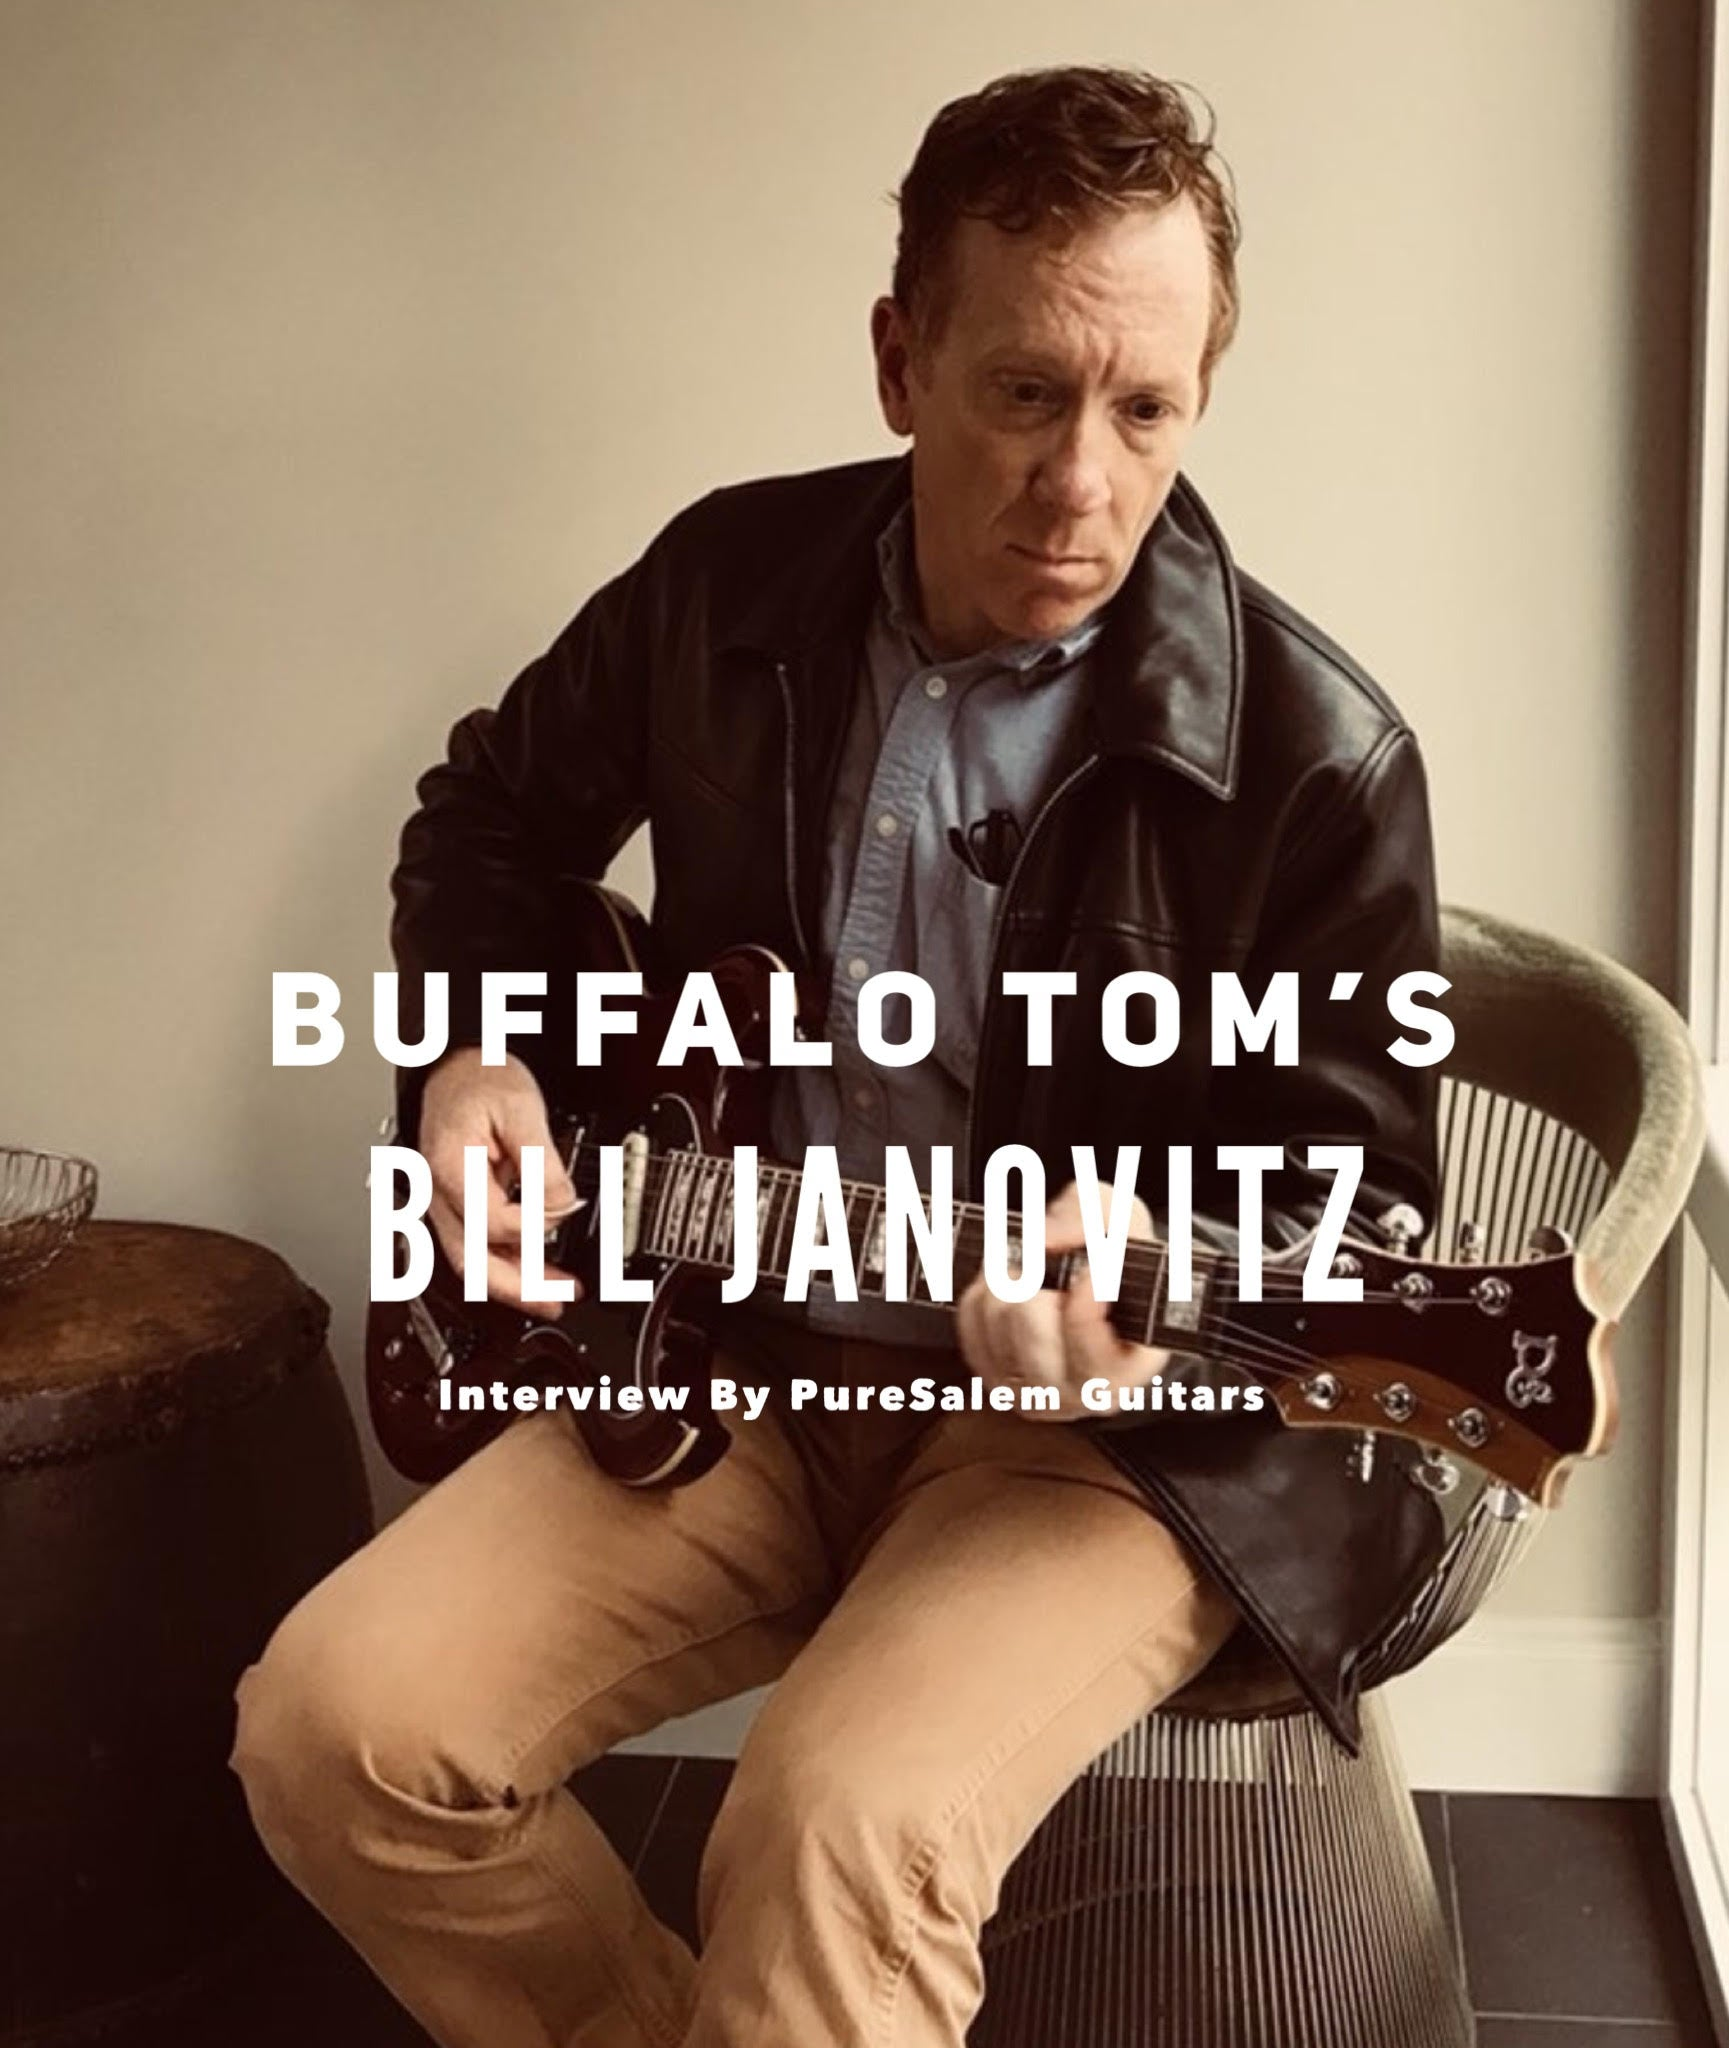 Bill Janovitz of Buffalo Tom